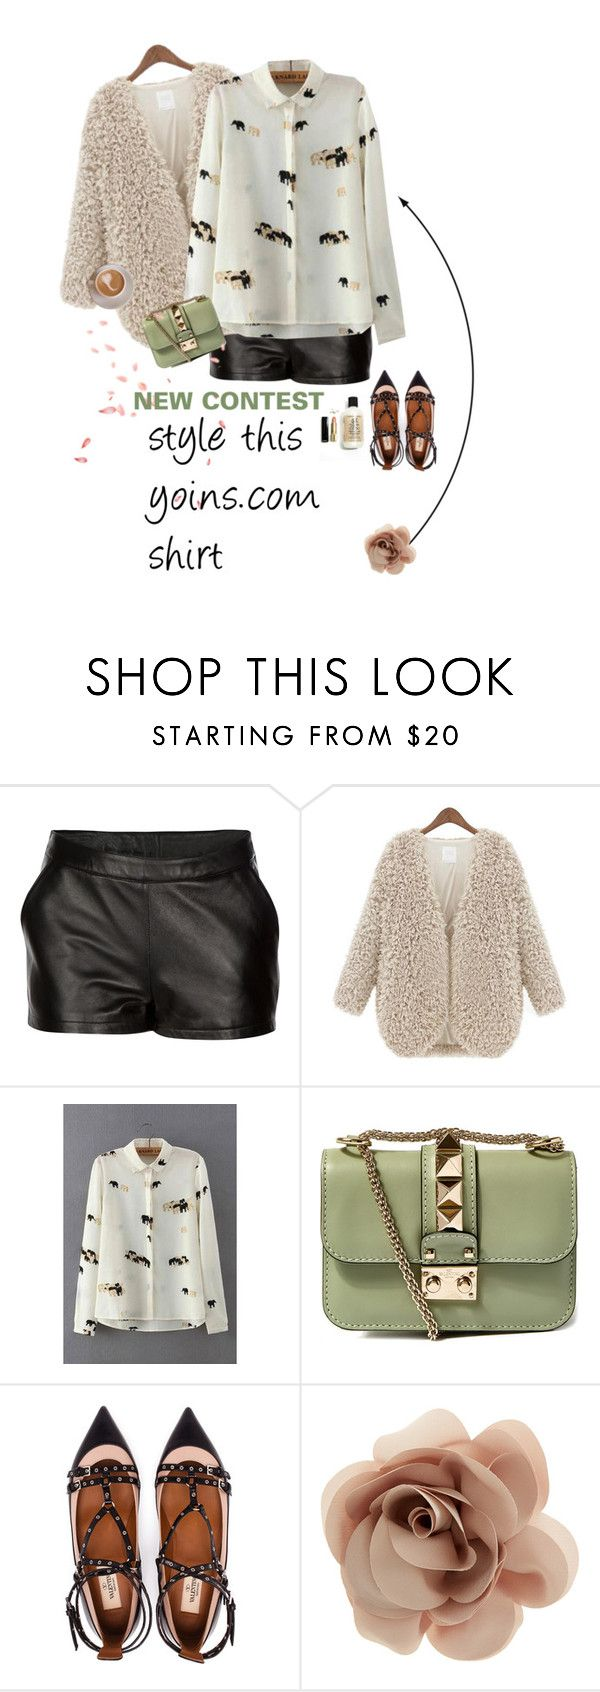 """""""New Contest (link in a description box) Please enter and win 20# Voucher"""" by nensy ❤ liked on Polyvore featuring Mairi Mcdonald, Valentino, Accessorize, women's clothing, women, female, woman, misses and juniors"""